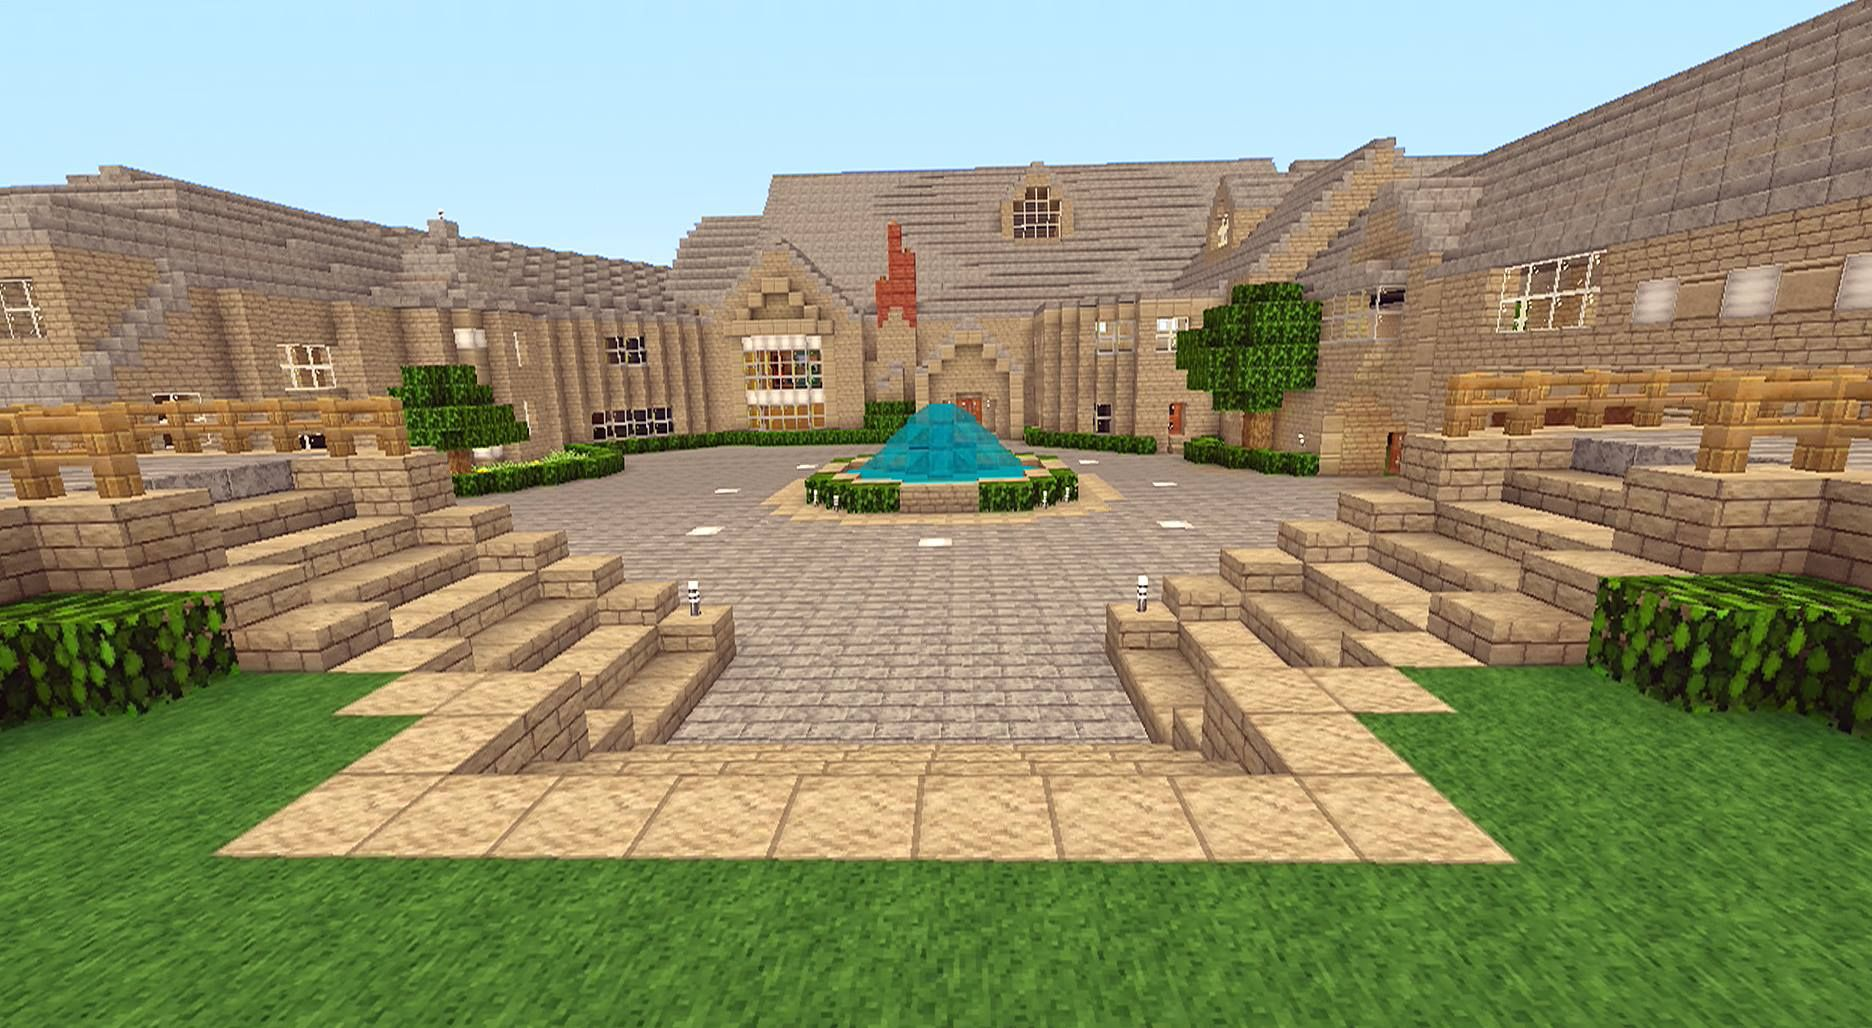 17 Best images about Minecraft Mansions on Pinterest Mansions Cool minecraft  creations and Modern houses. Minecraft Mansion Tutorial